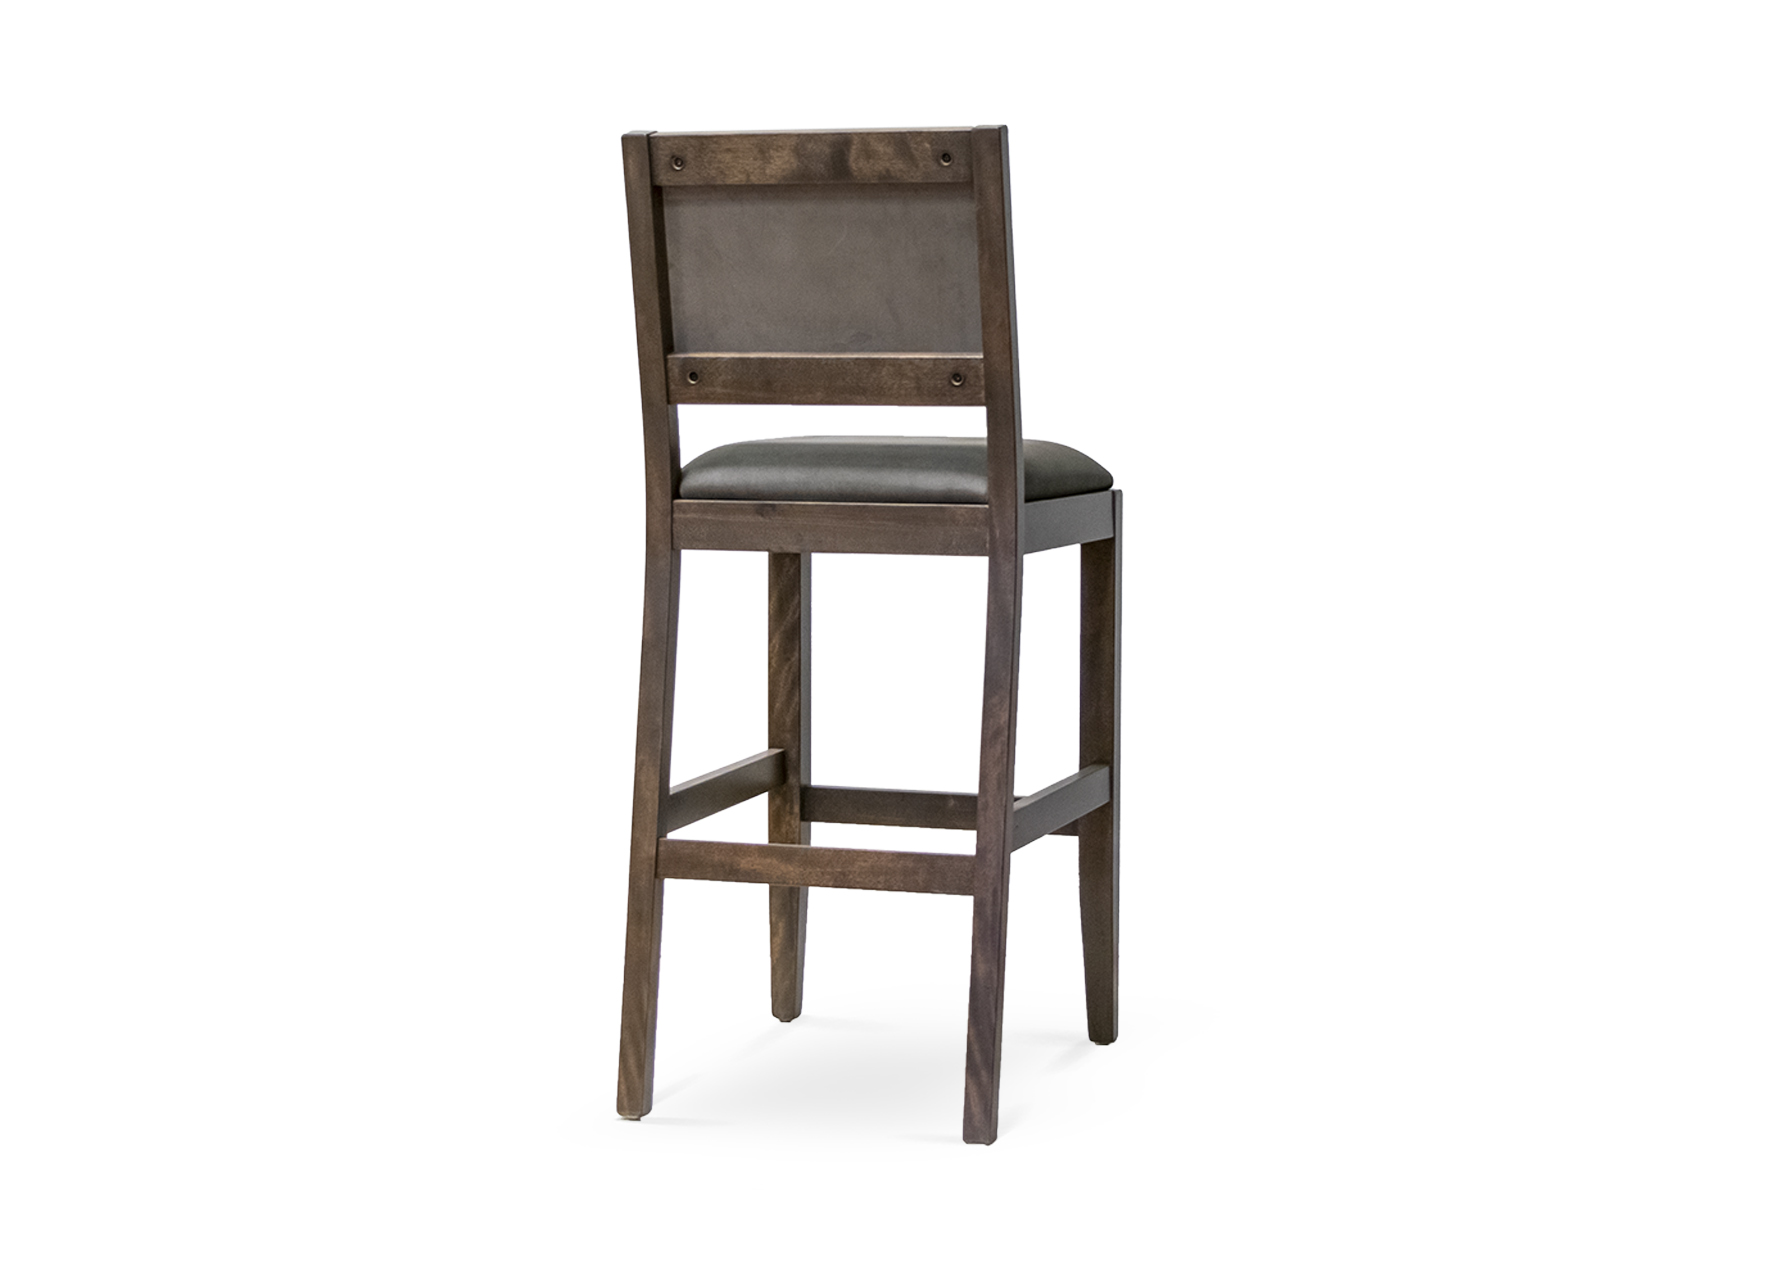 Anderson Padded Chair - BA